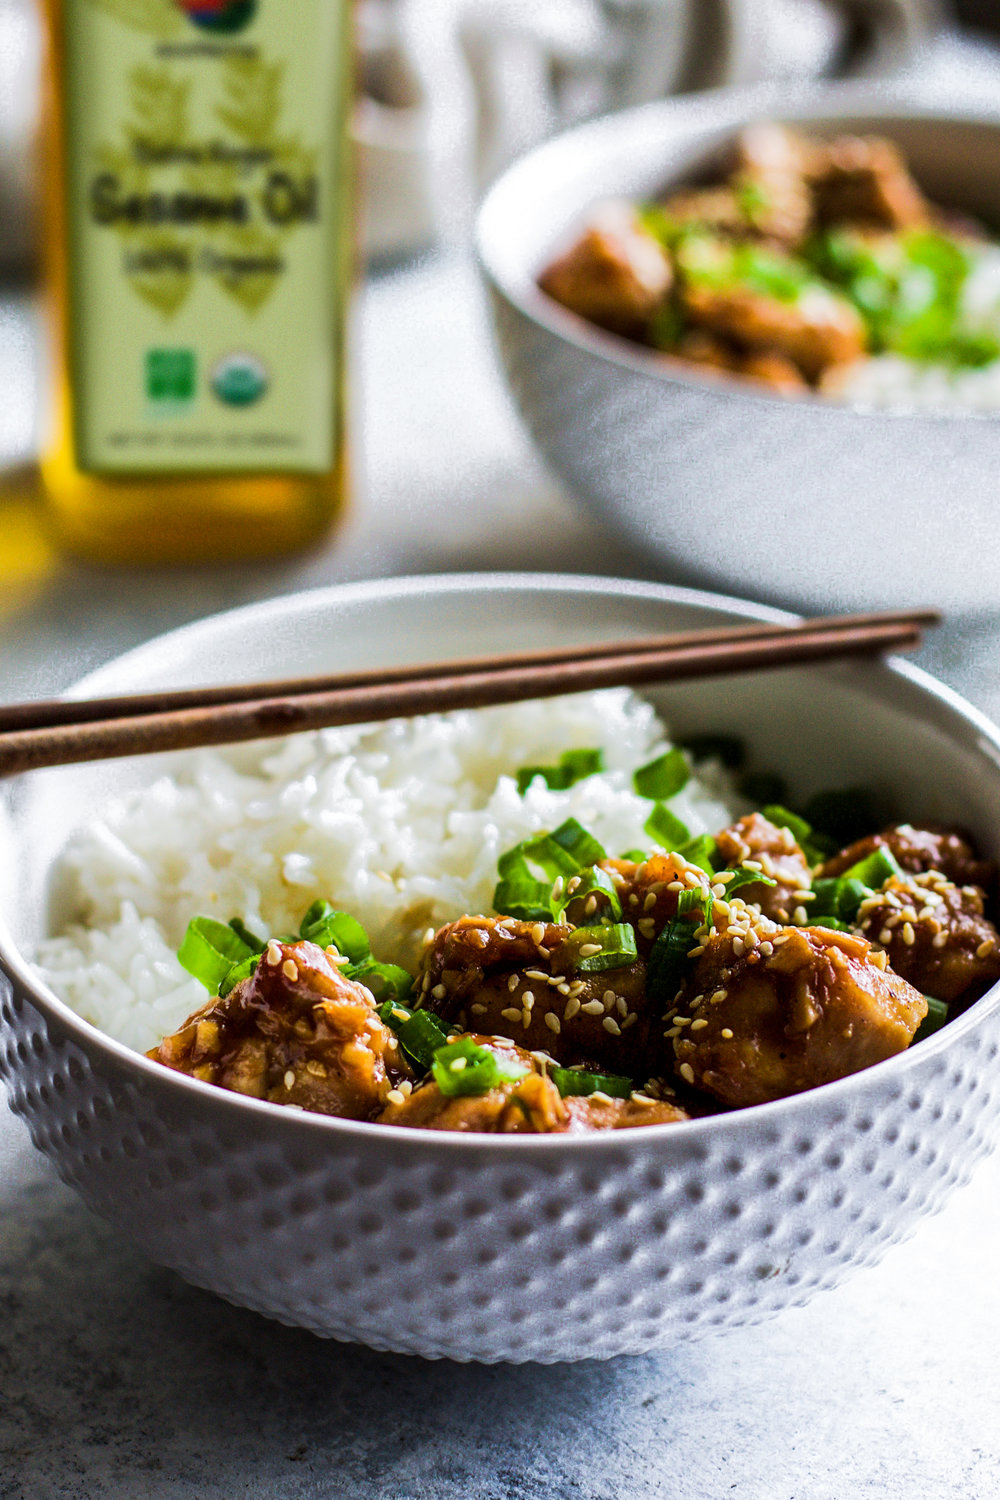 Spicy Garlic Sesame Chicken: My Diary of Us